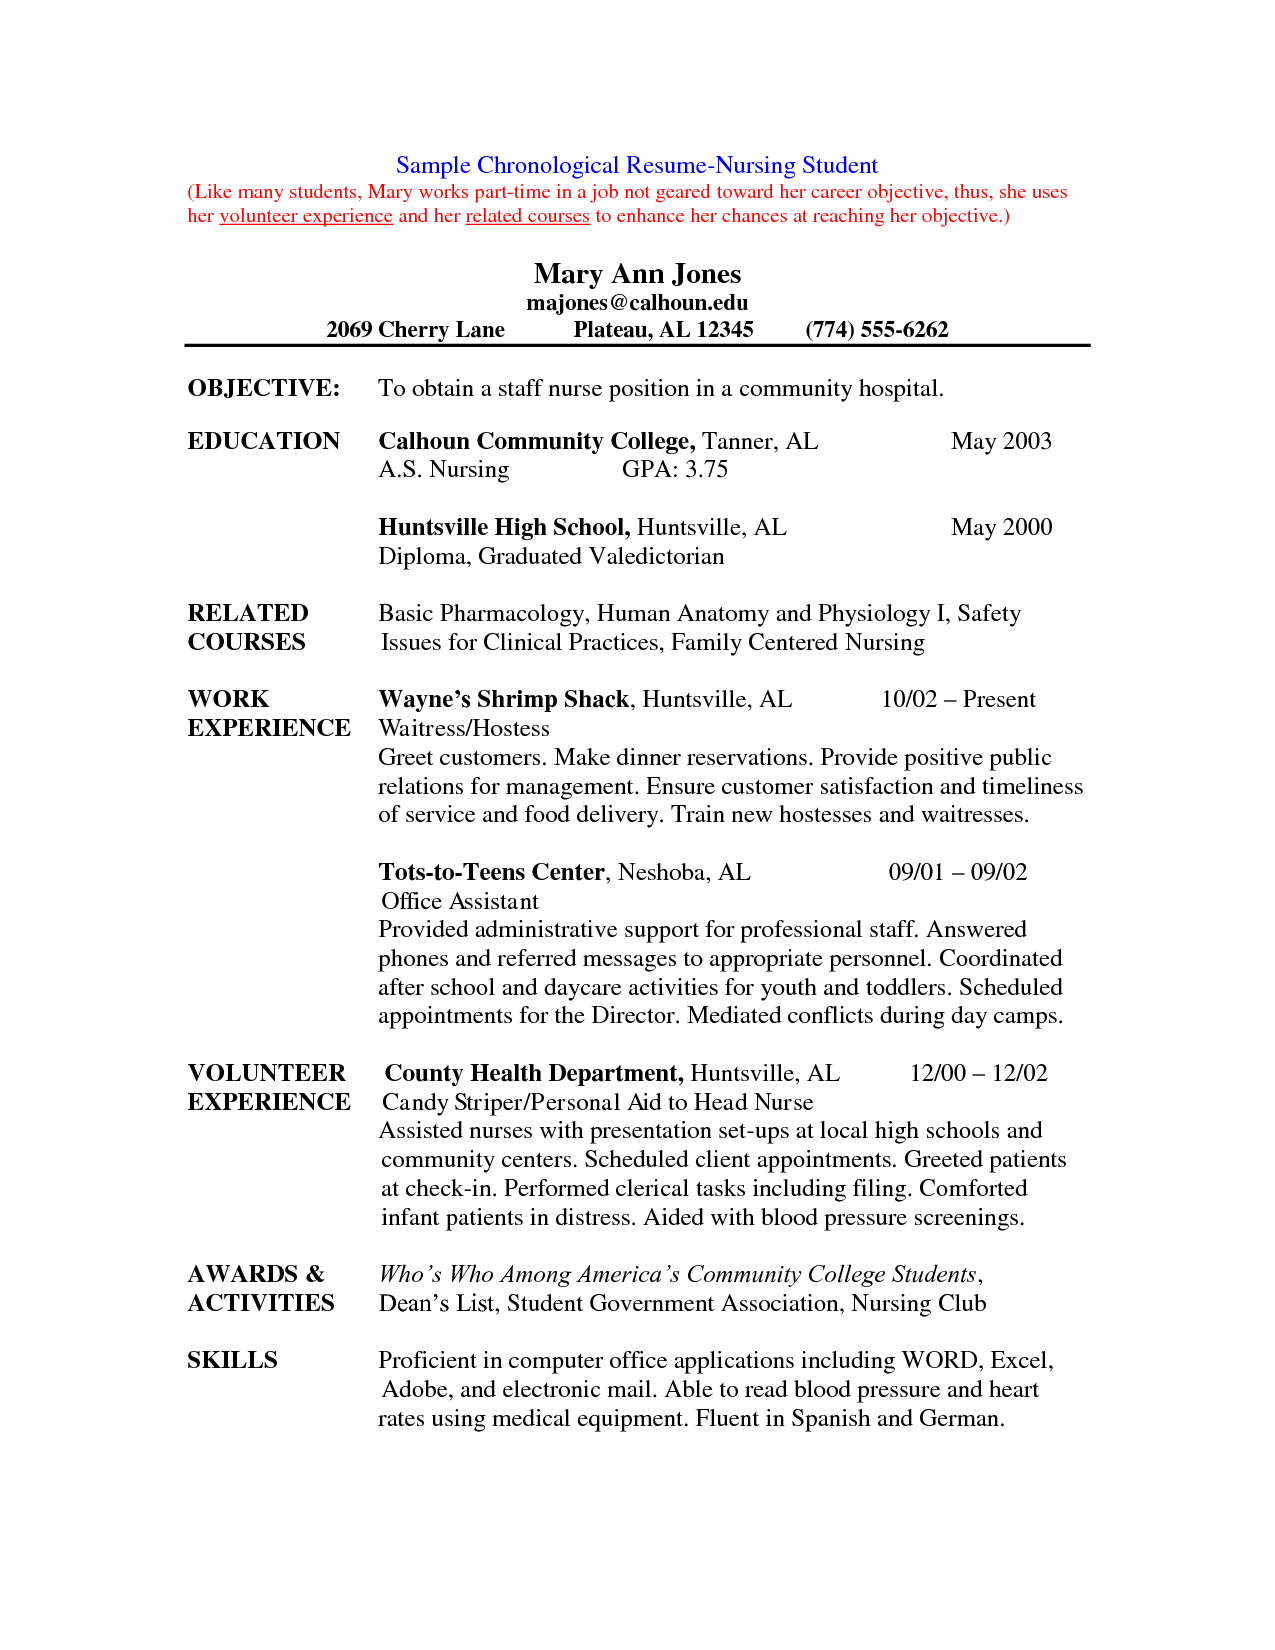 cover letters for nursing job application pdf | nursing | pinterest